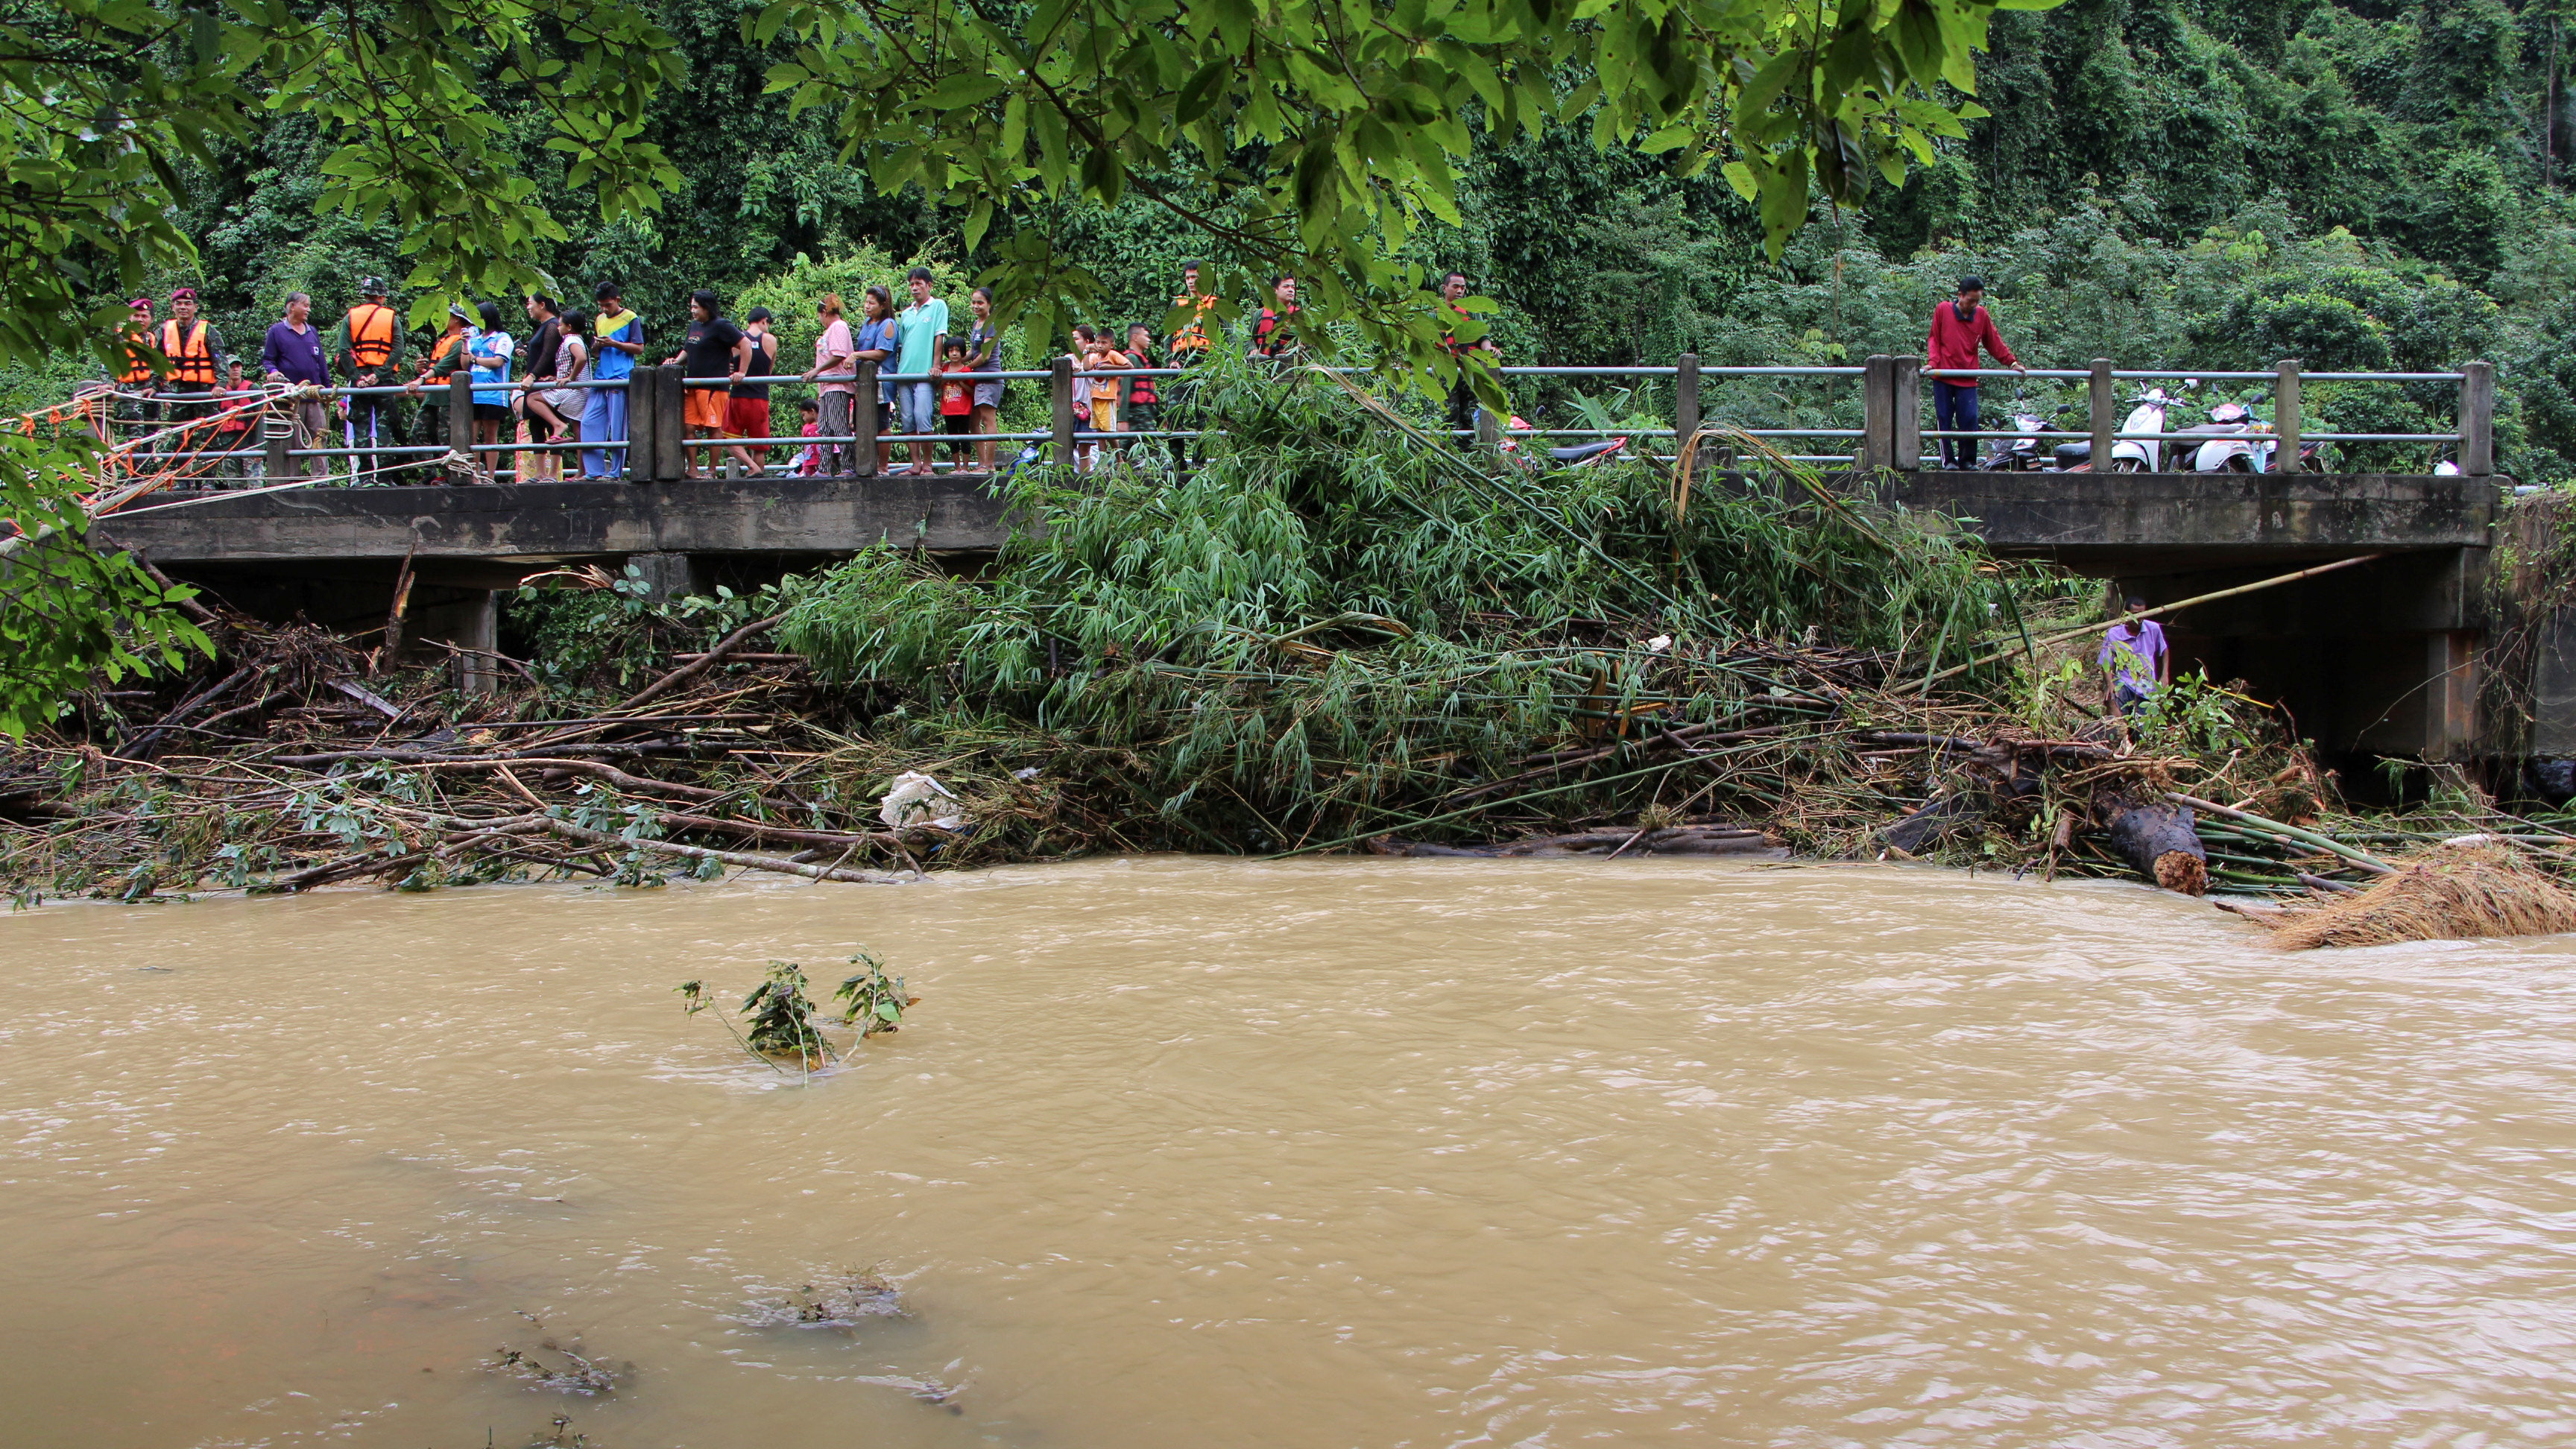 Onlookers and rescue workers stand on a bridge in a flooded area in Sichon District, Nakhon Si Thammarat province, Thailand December